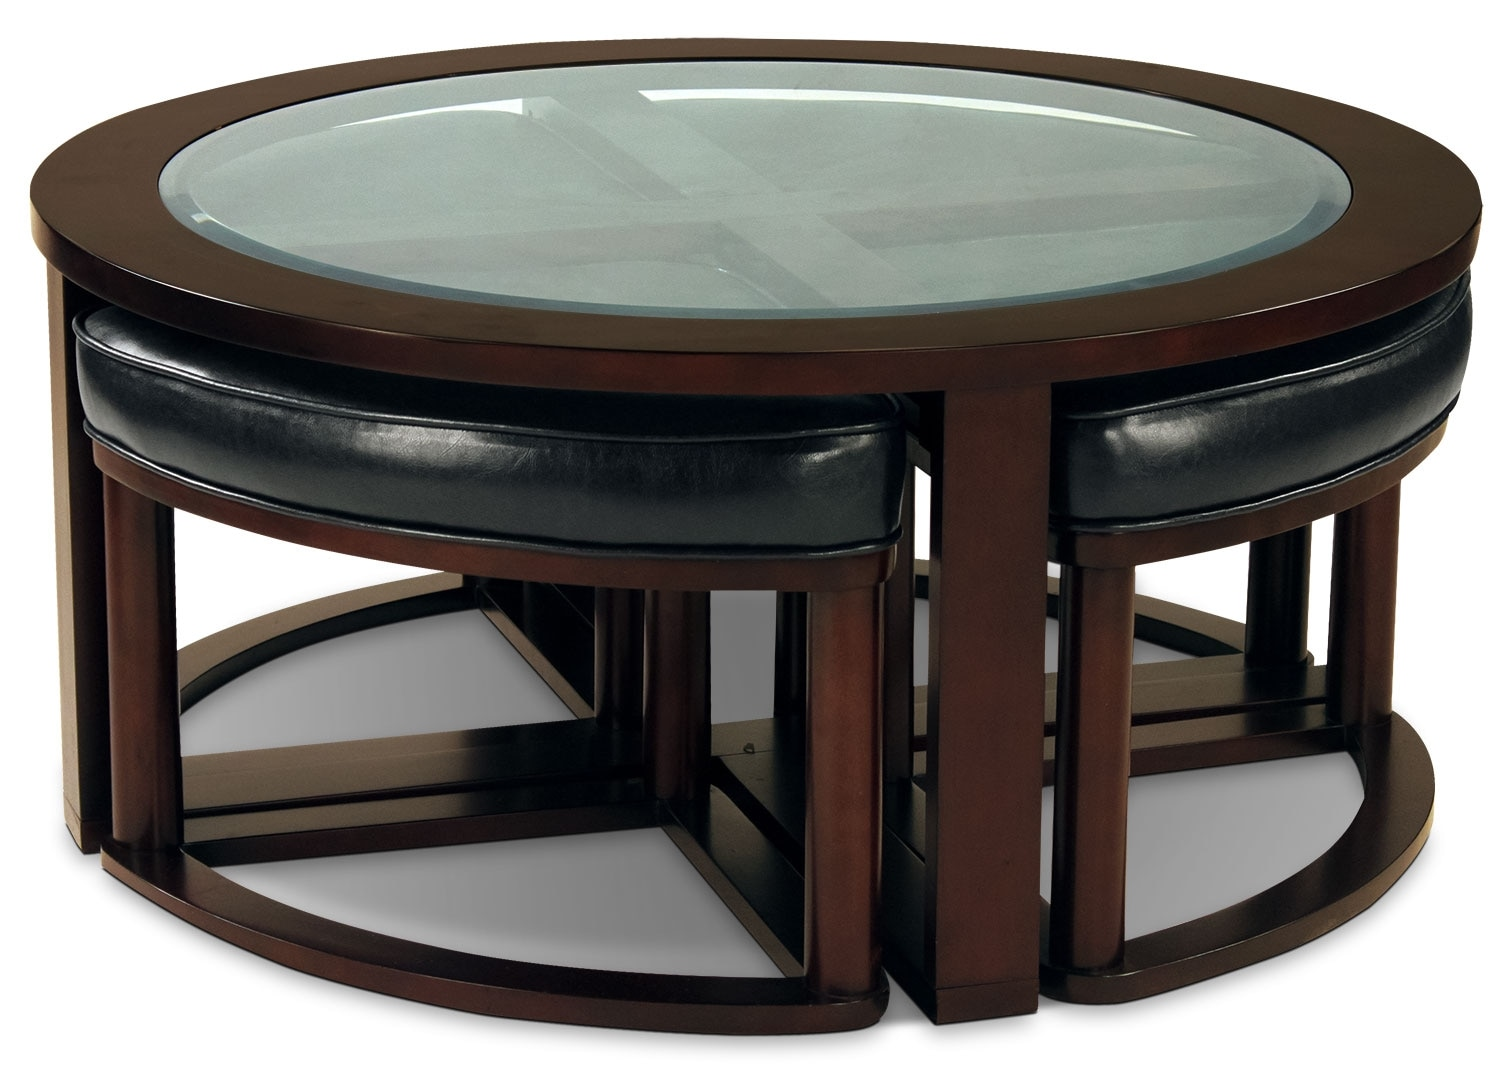 Sierra coffee table with four ottoman wedge stools the brick Coffee table and side table